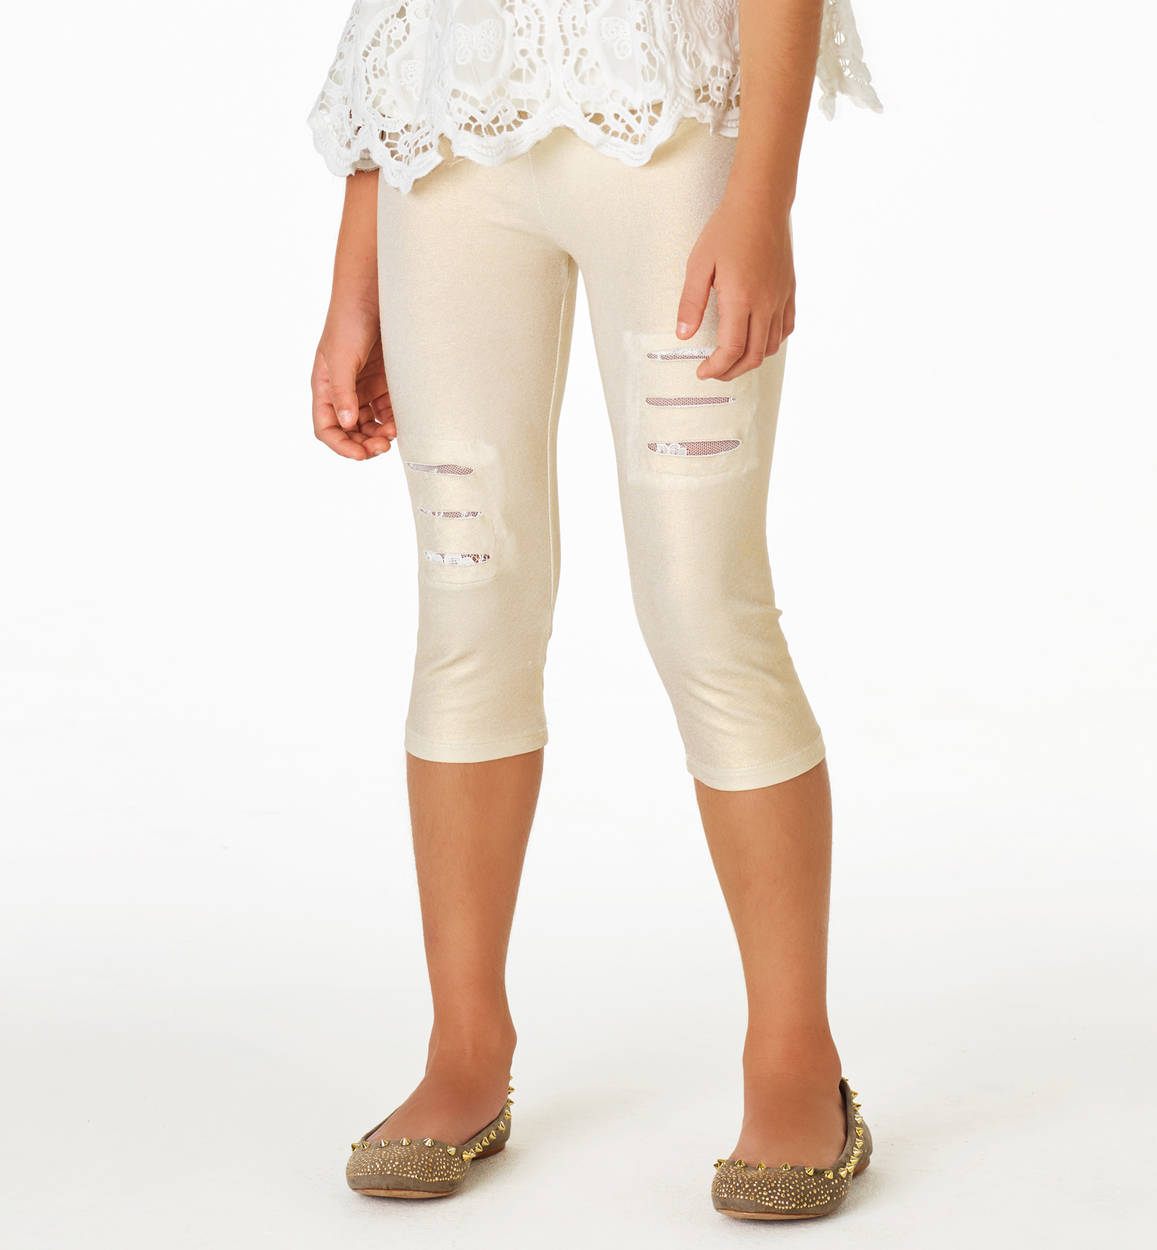 4fb3d3d7ae4 Sarabanda glittery cotton leggings with rips embellished with lace patches  for girls from 6 to 16